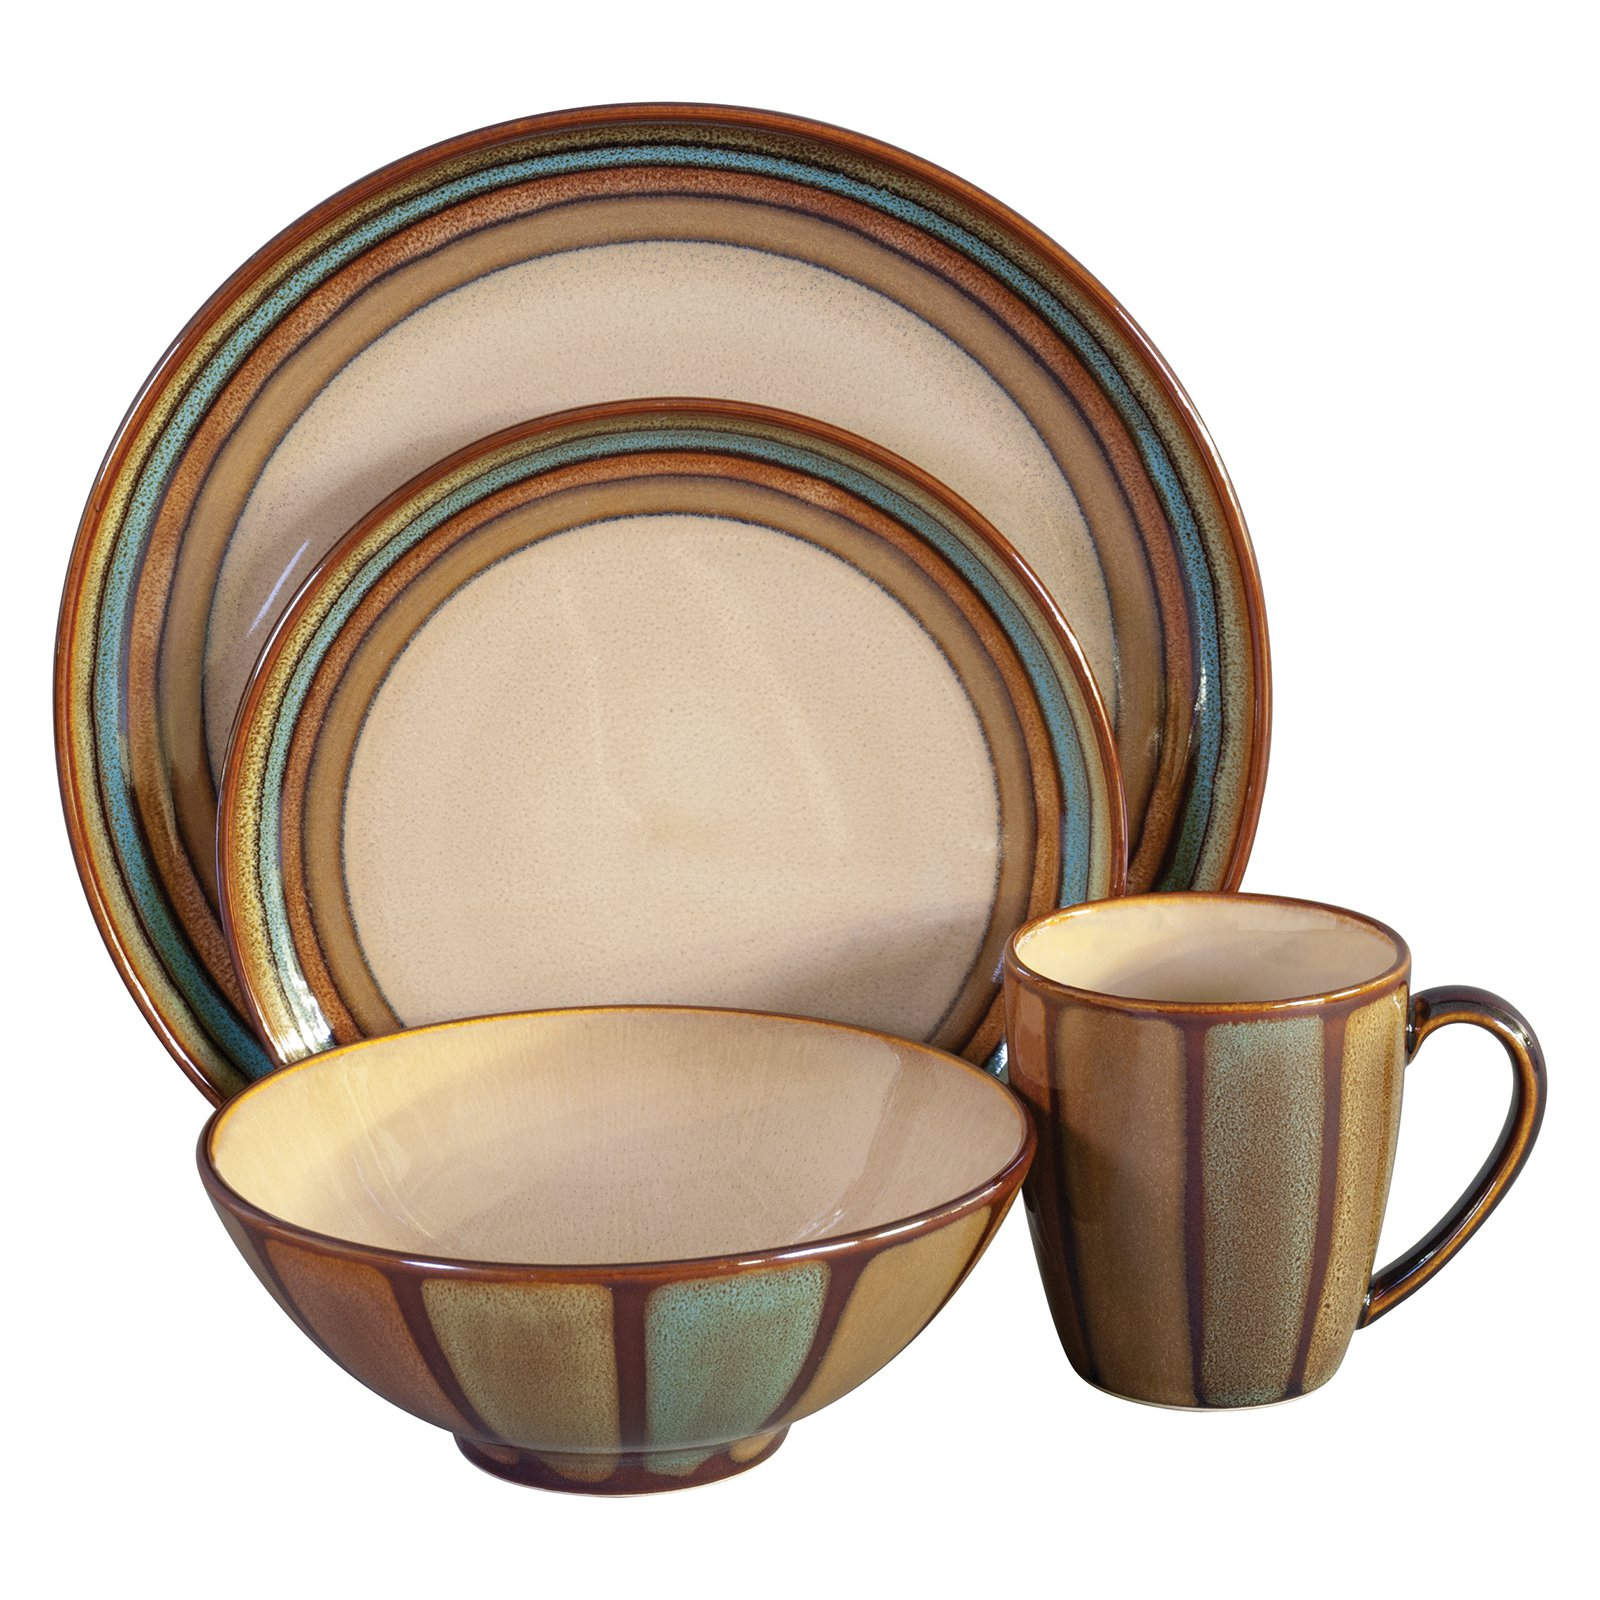 sc 1 st  Walmart & Sango Flair Dinnerware - Brown - Set of 16 - Walmart.com